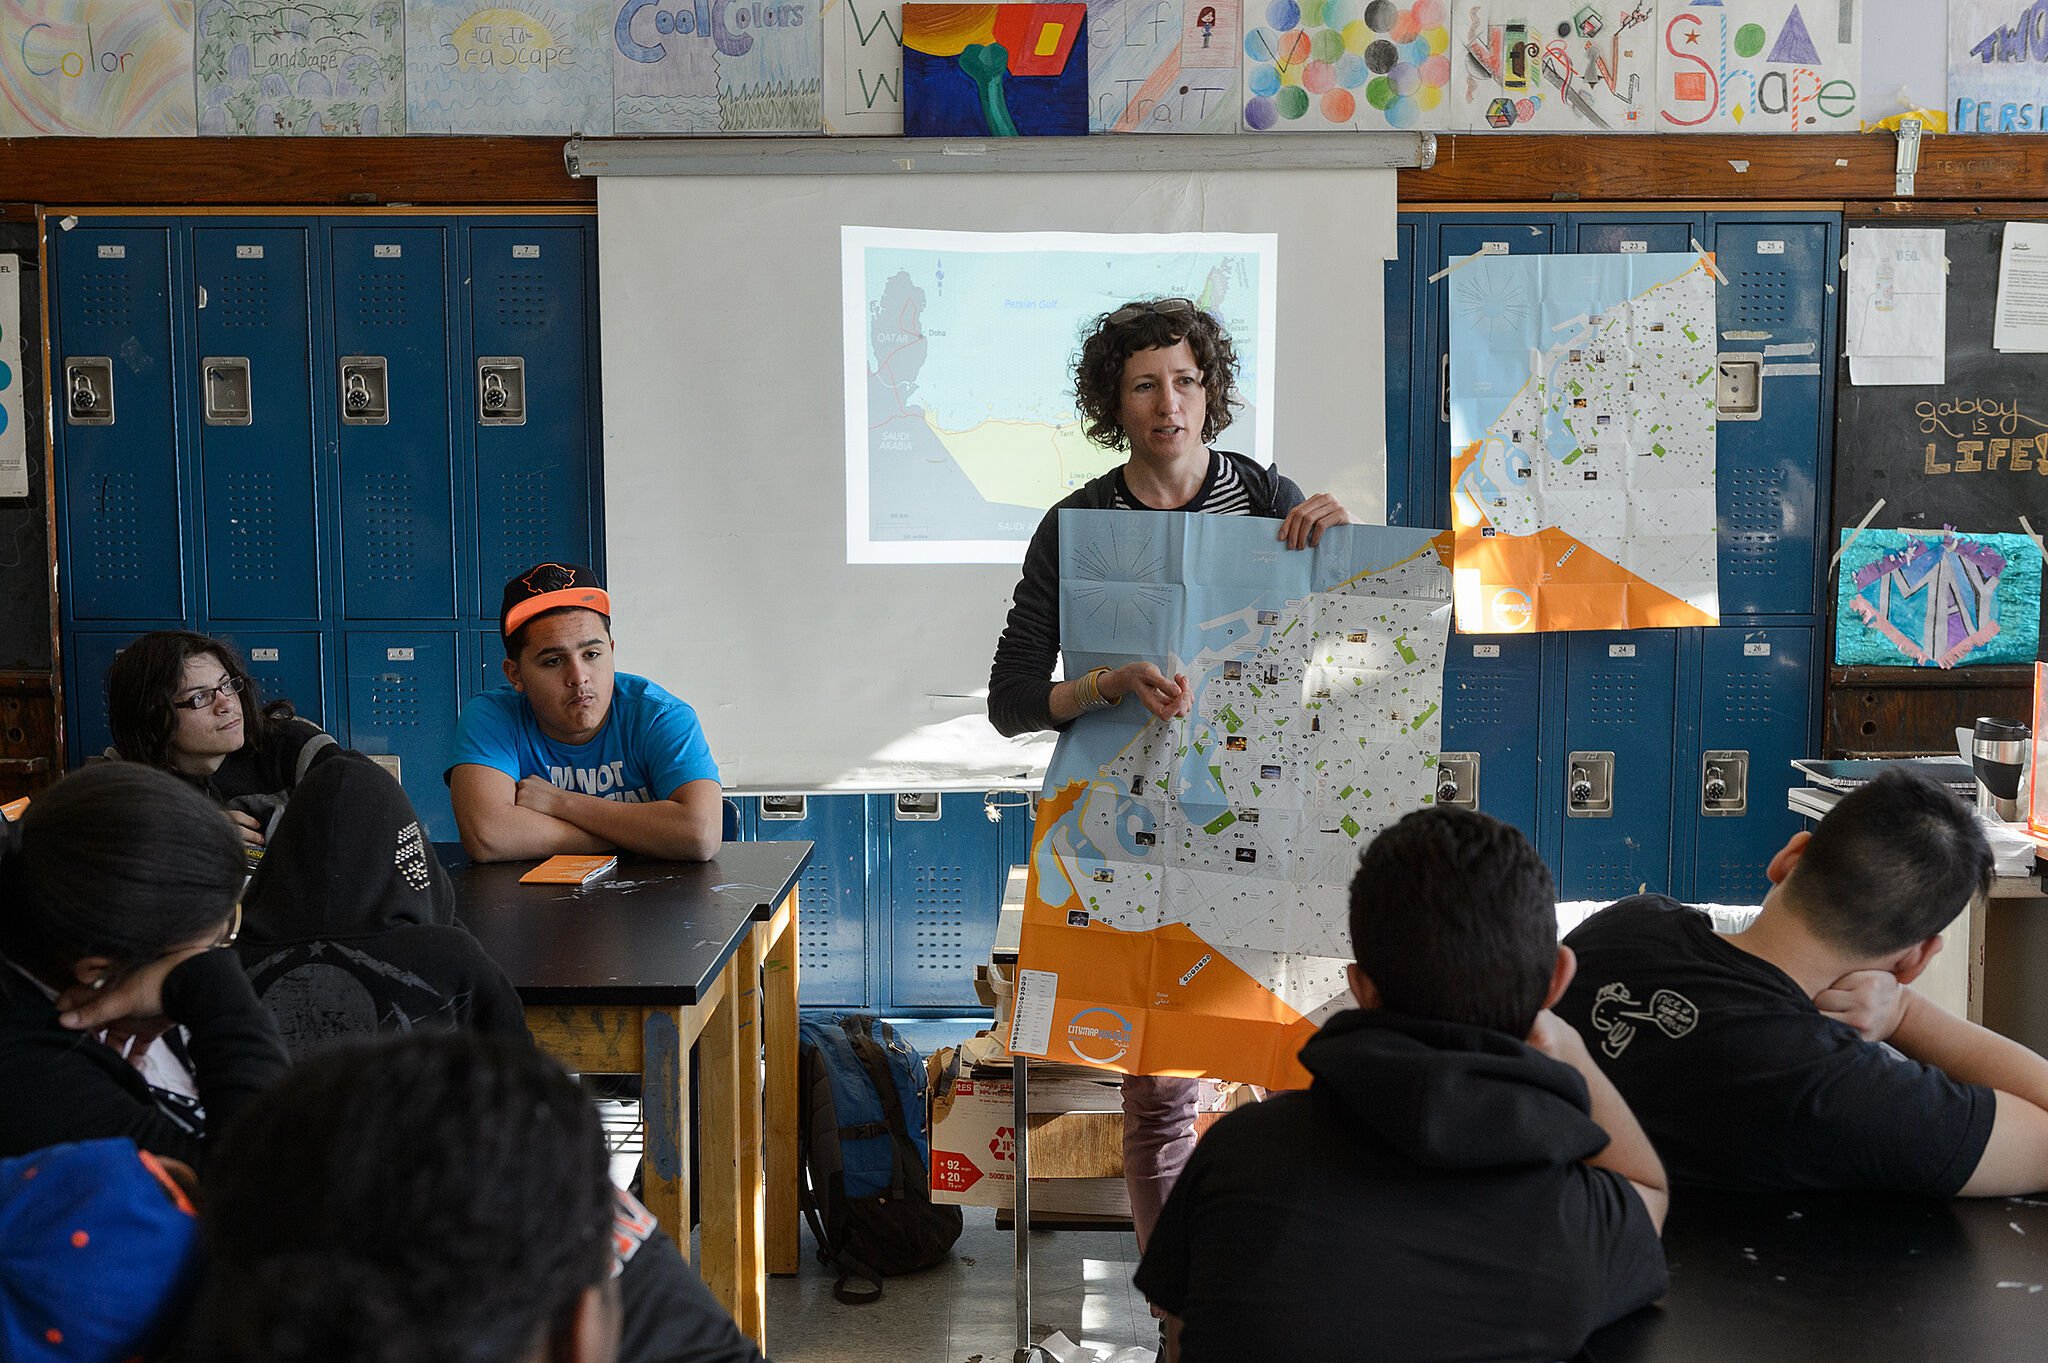 Artist presenting her map to class of students.